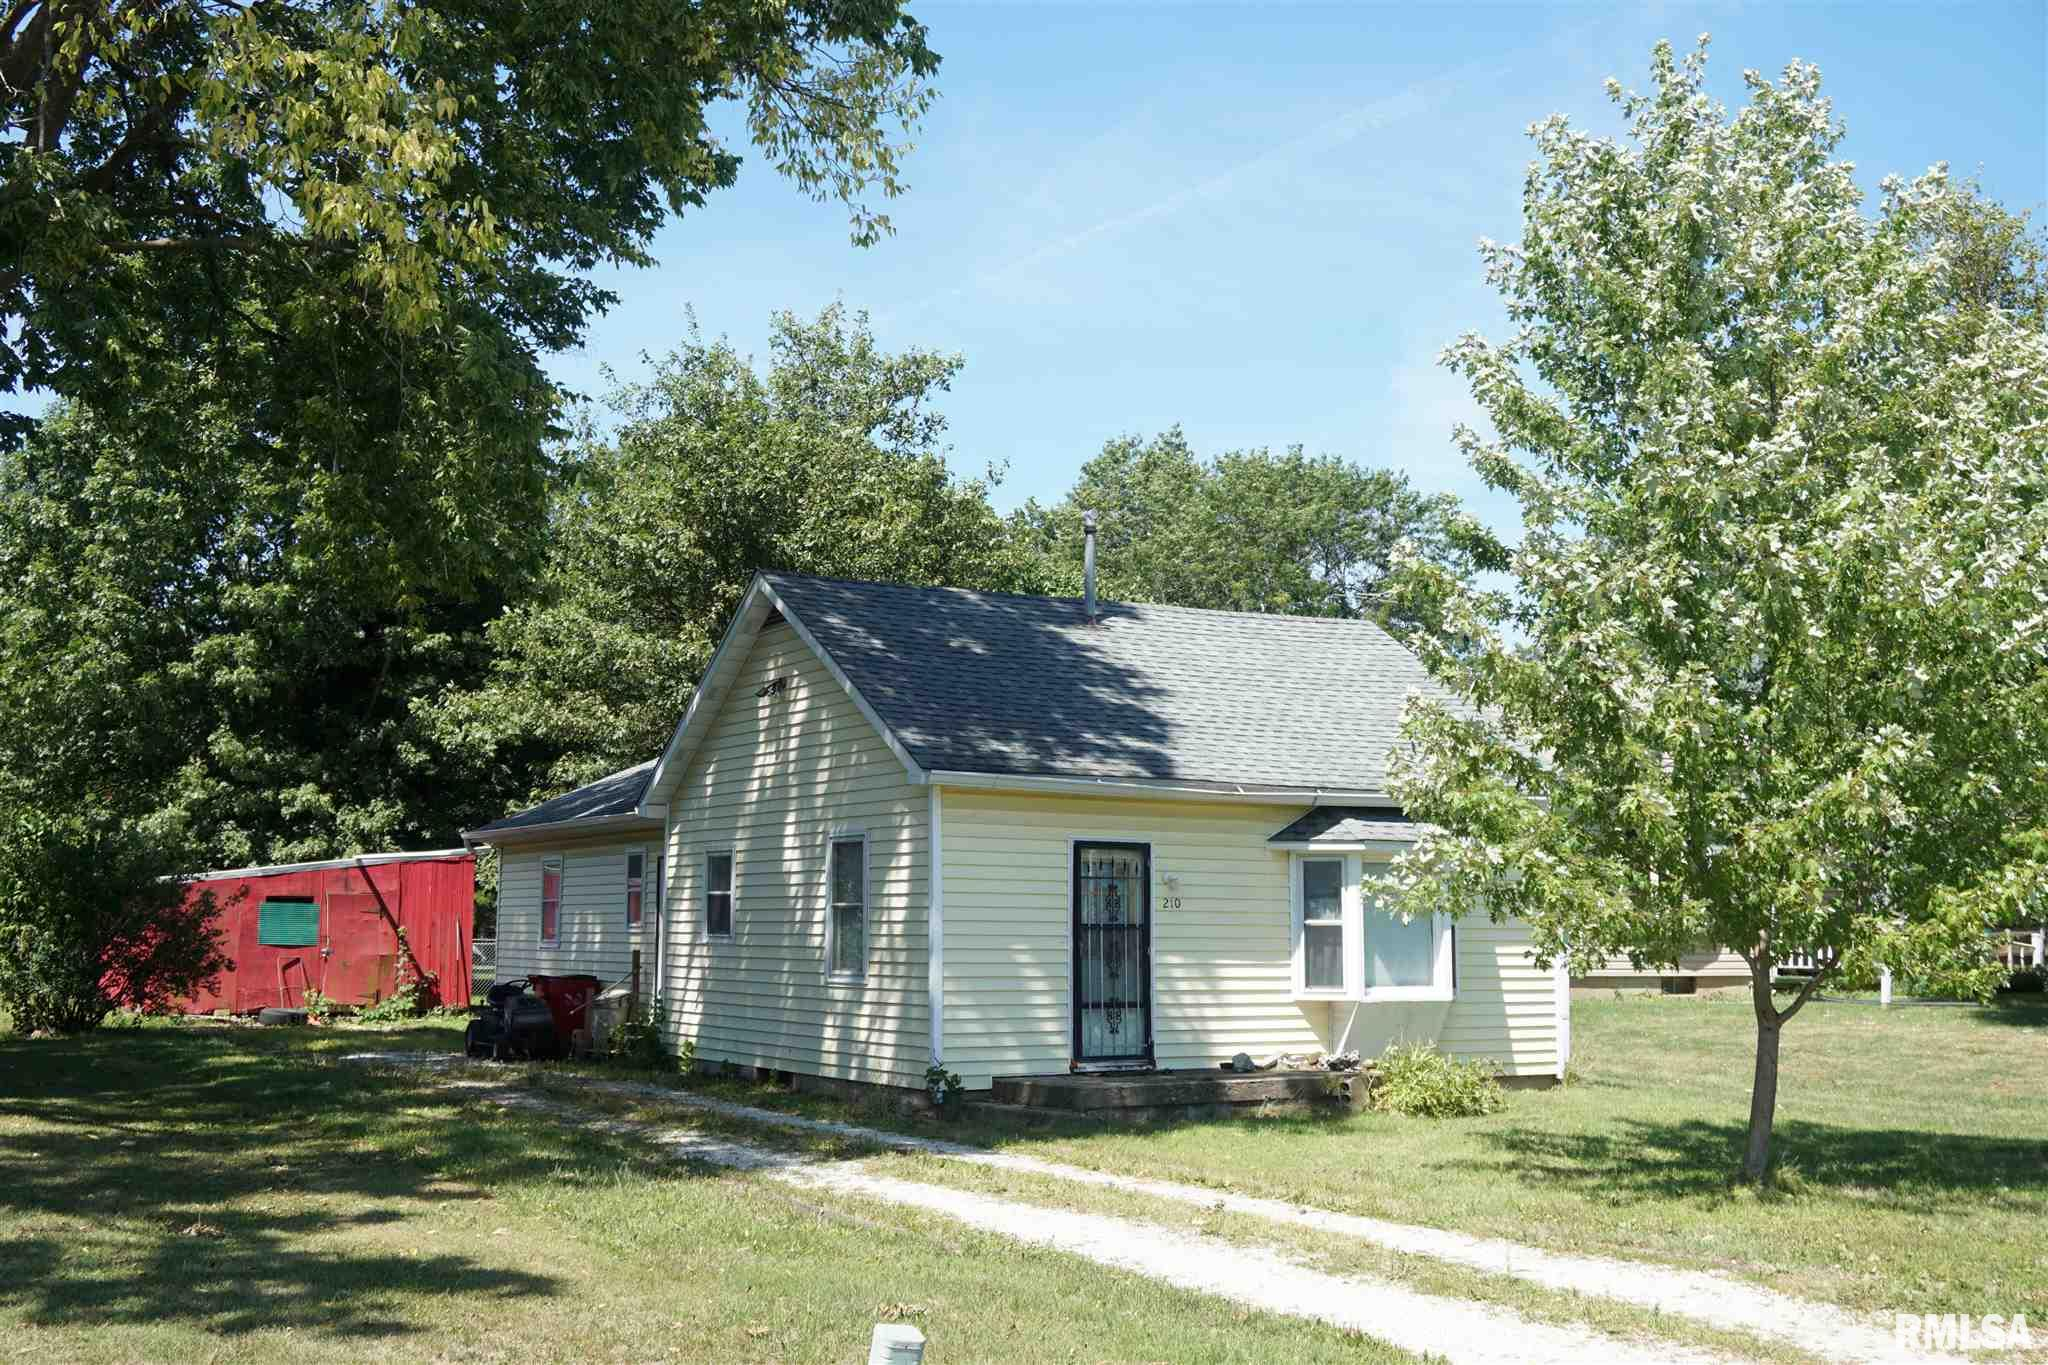 210 N KNOX Property Photo - Elmwood, IL real estate listing